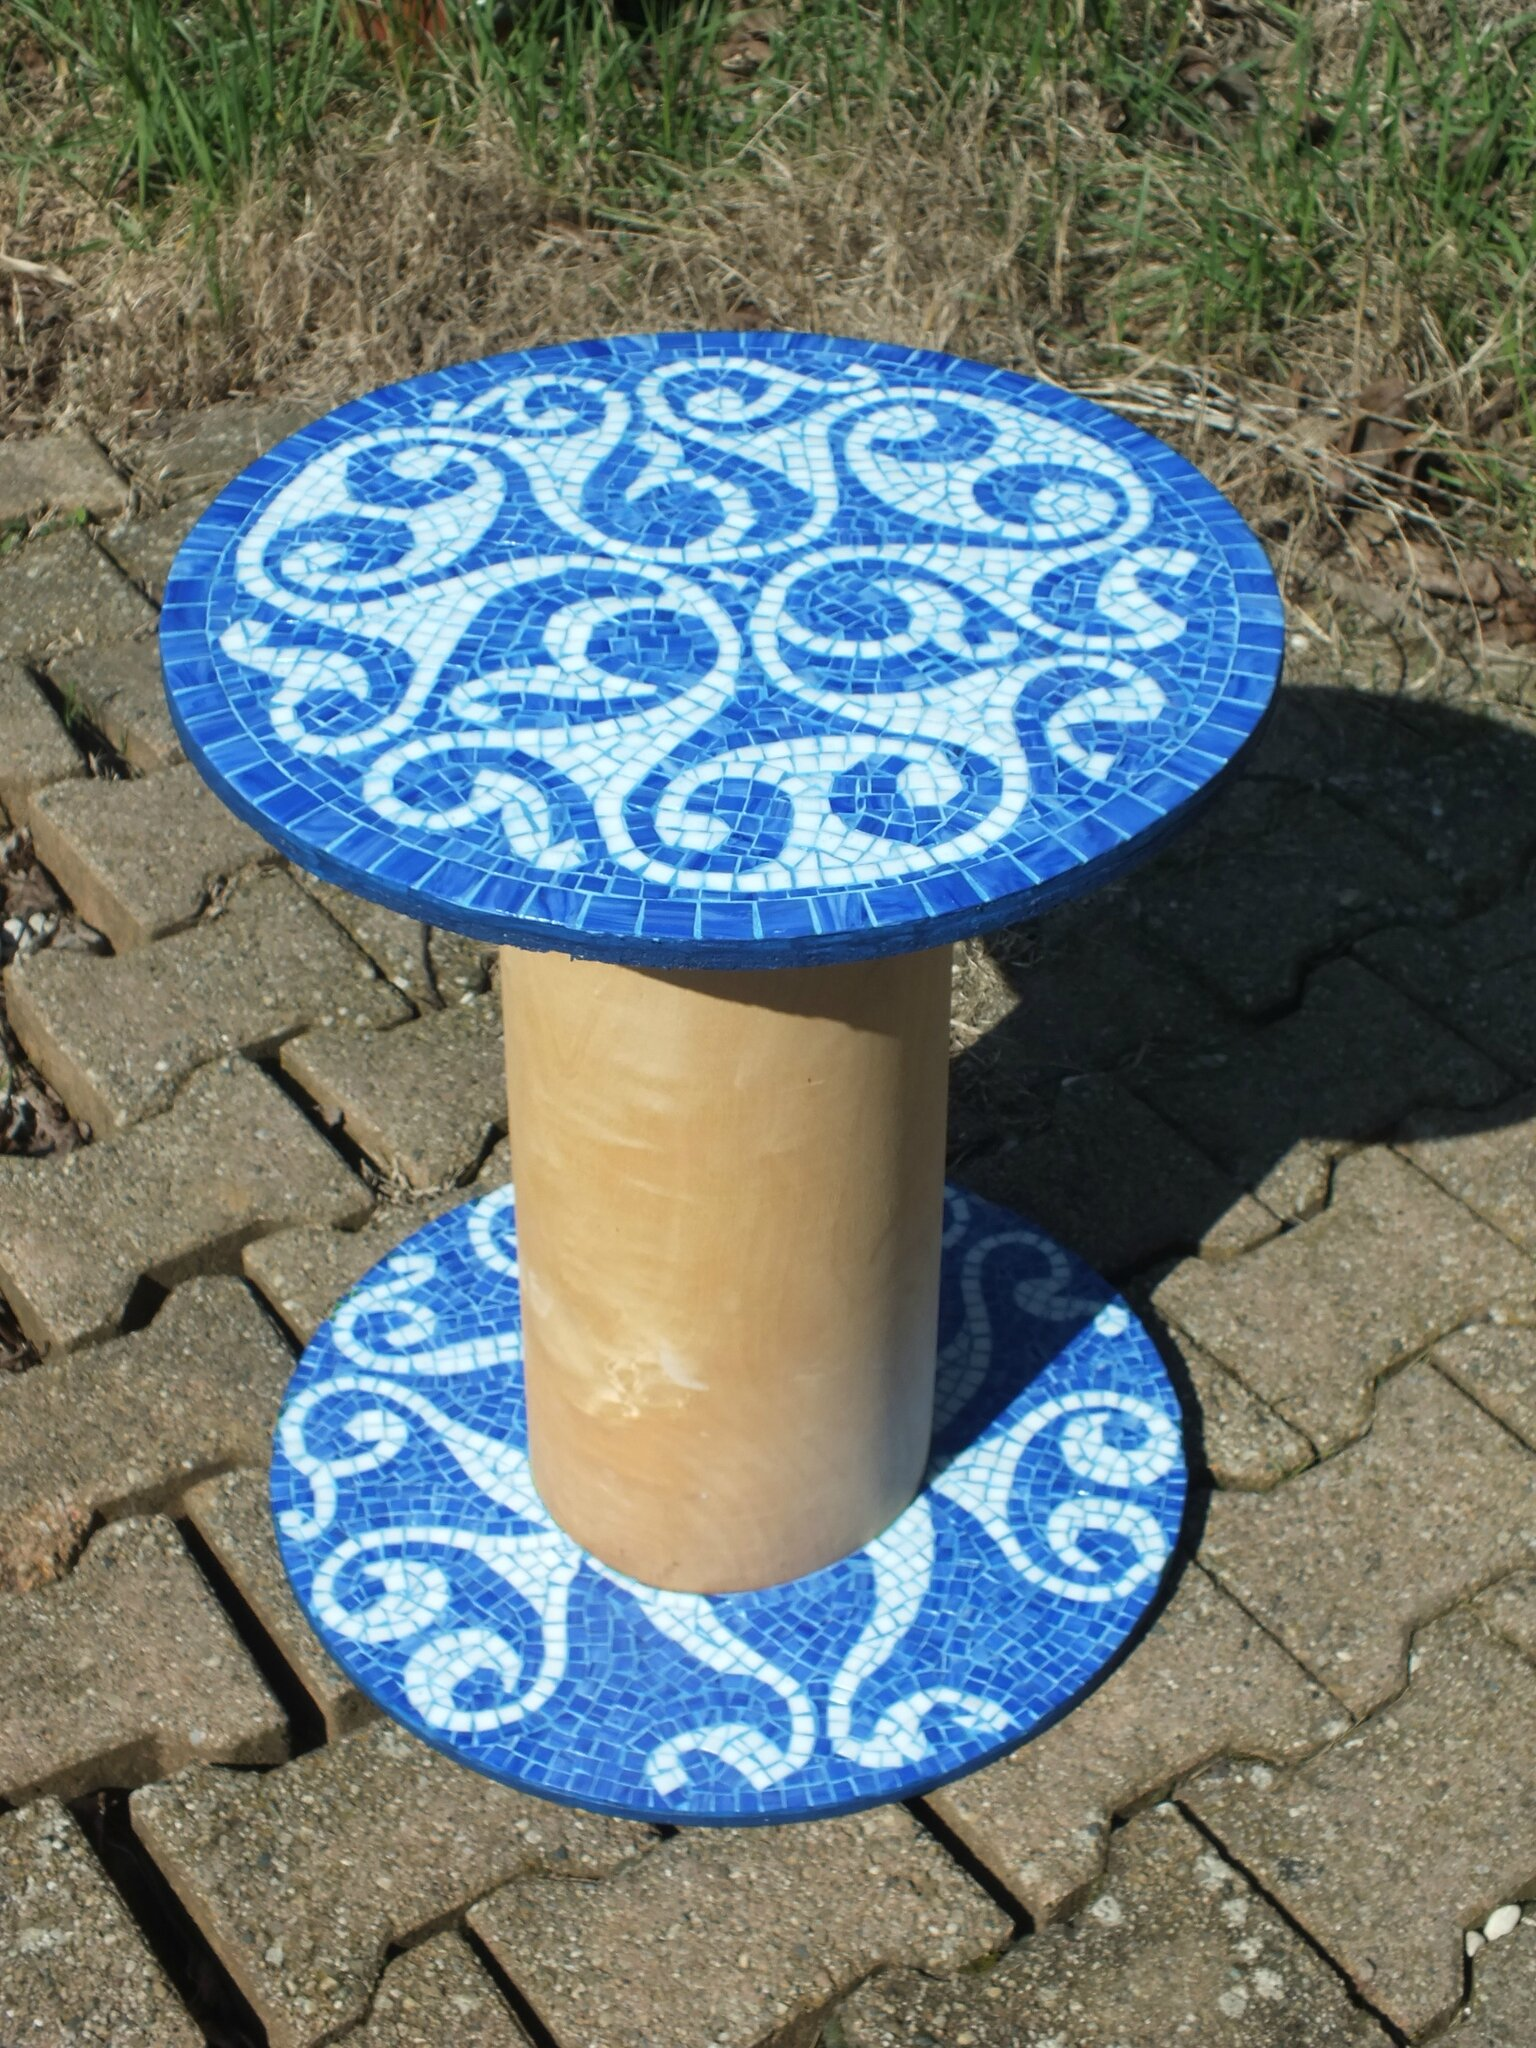 Table De Jardin Mosaique Table Touret Motif Celtique - Spirale Bleue